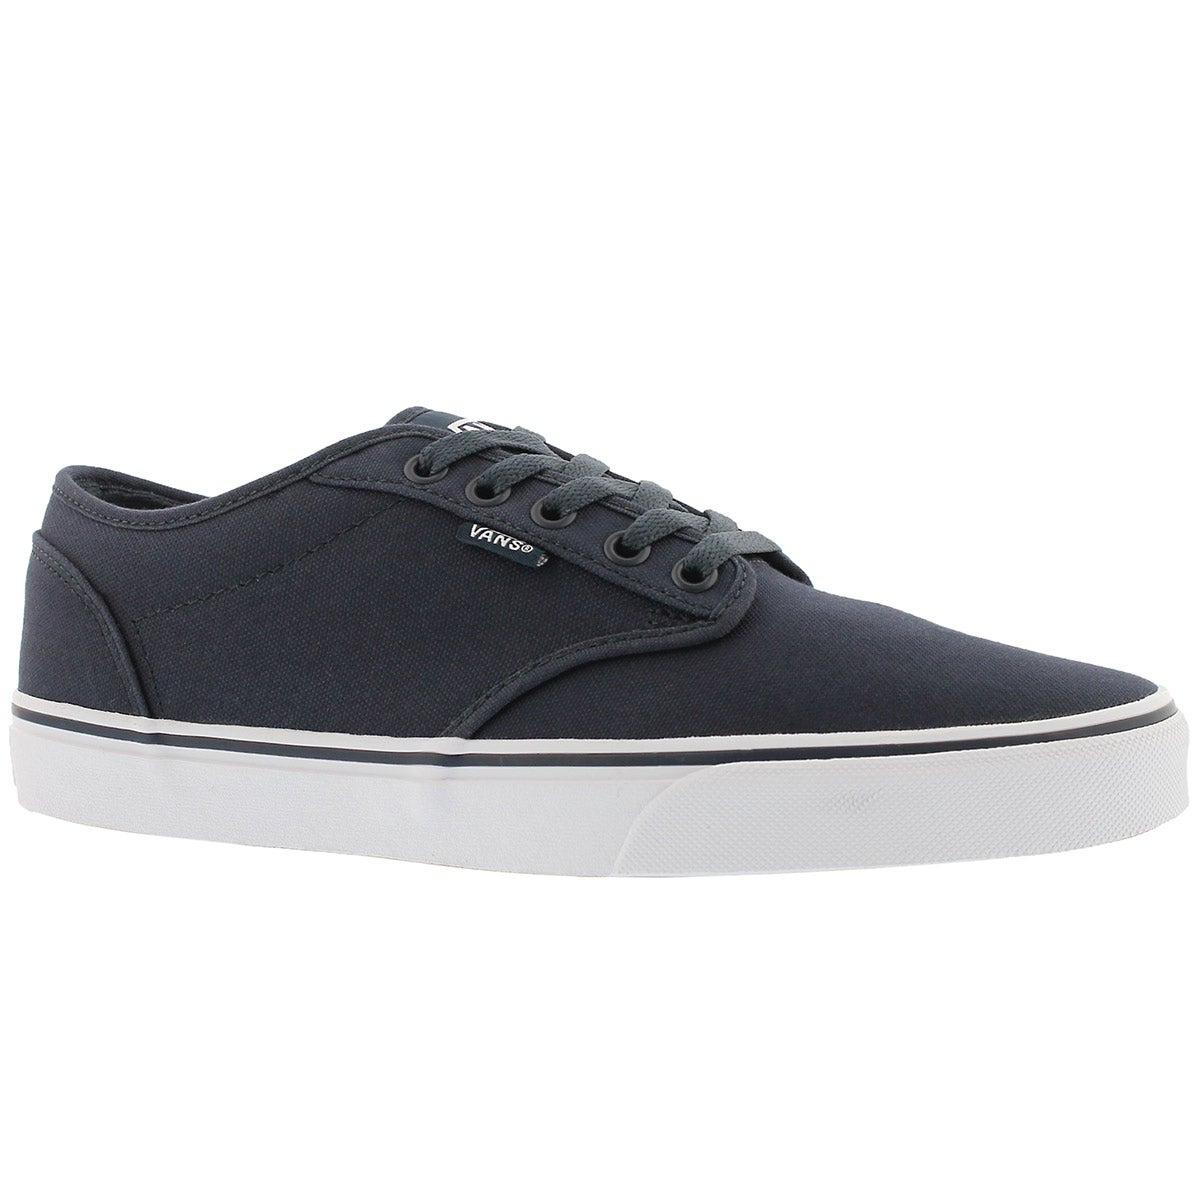 Men's ATWOOD navy canvas laceup sneakers